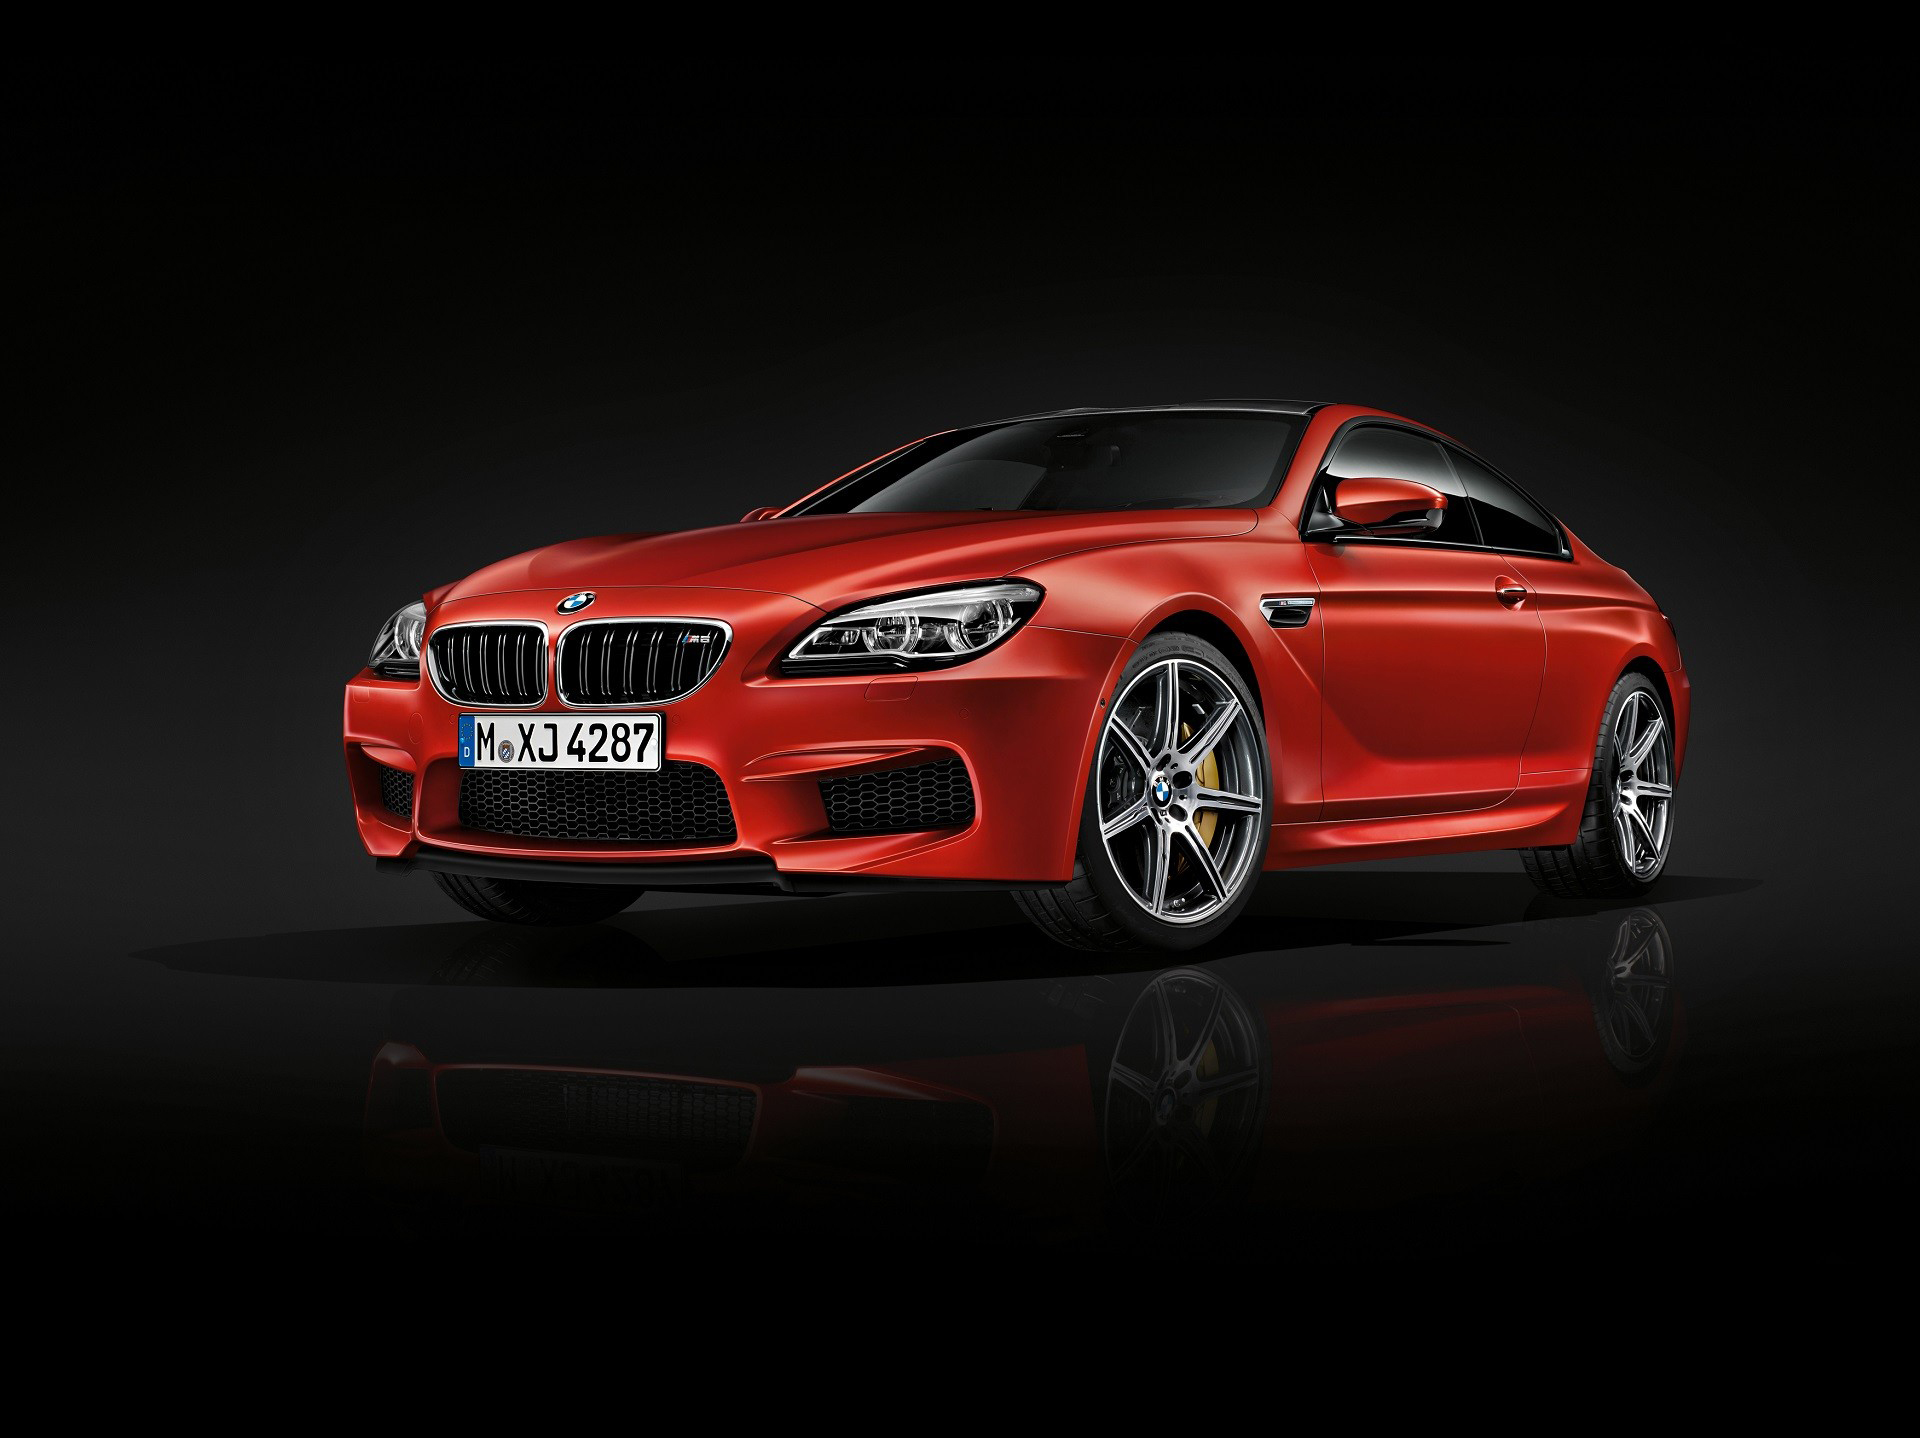 BMW M6 coupé 2015 - front side-face / profil avant